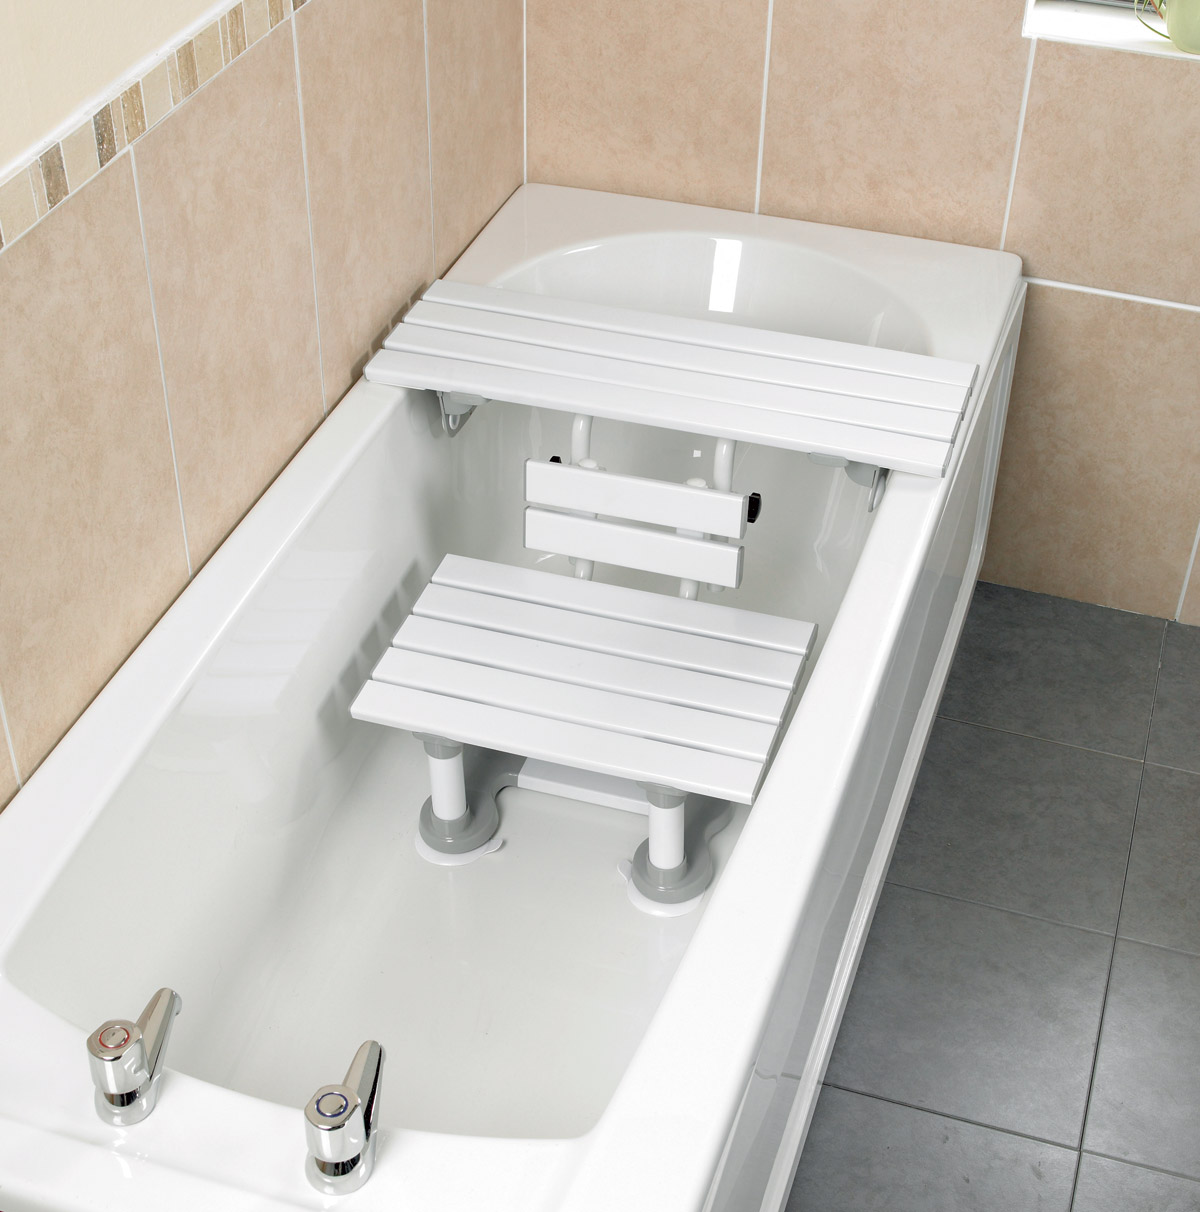 Chair For Bathtub 5 Key Benefits Of A Bath Seat Mobility Information Uk